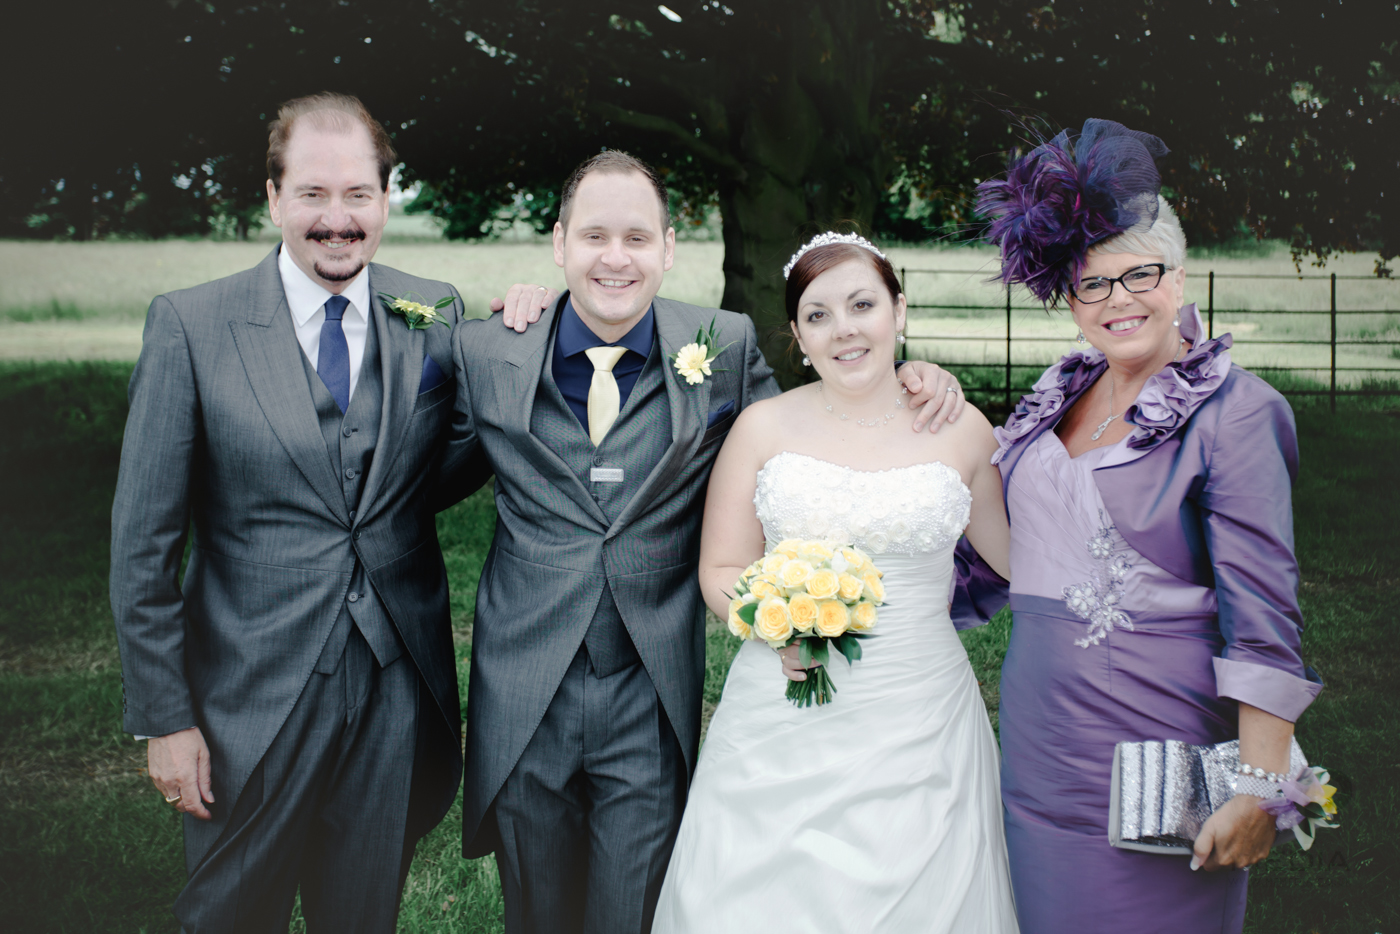 352 - Chris and Natalies Wedding (MAIN) - DO NOT SHARE THIS IMAGES ONLINE -0657.JPG